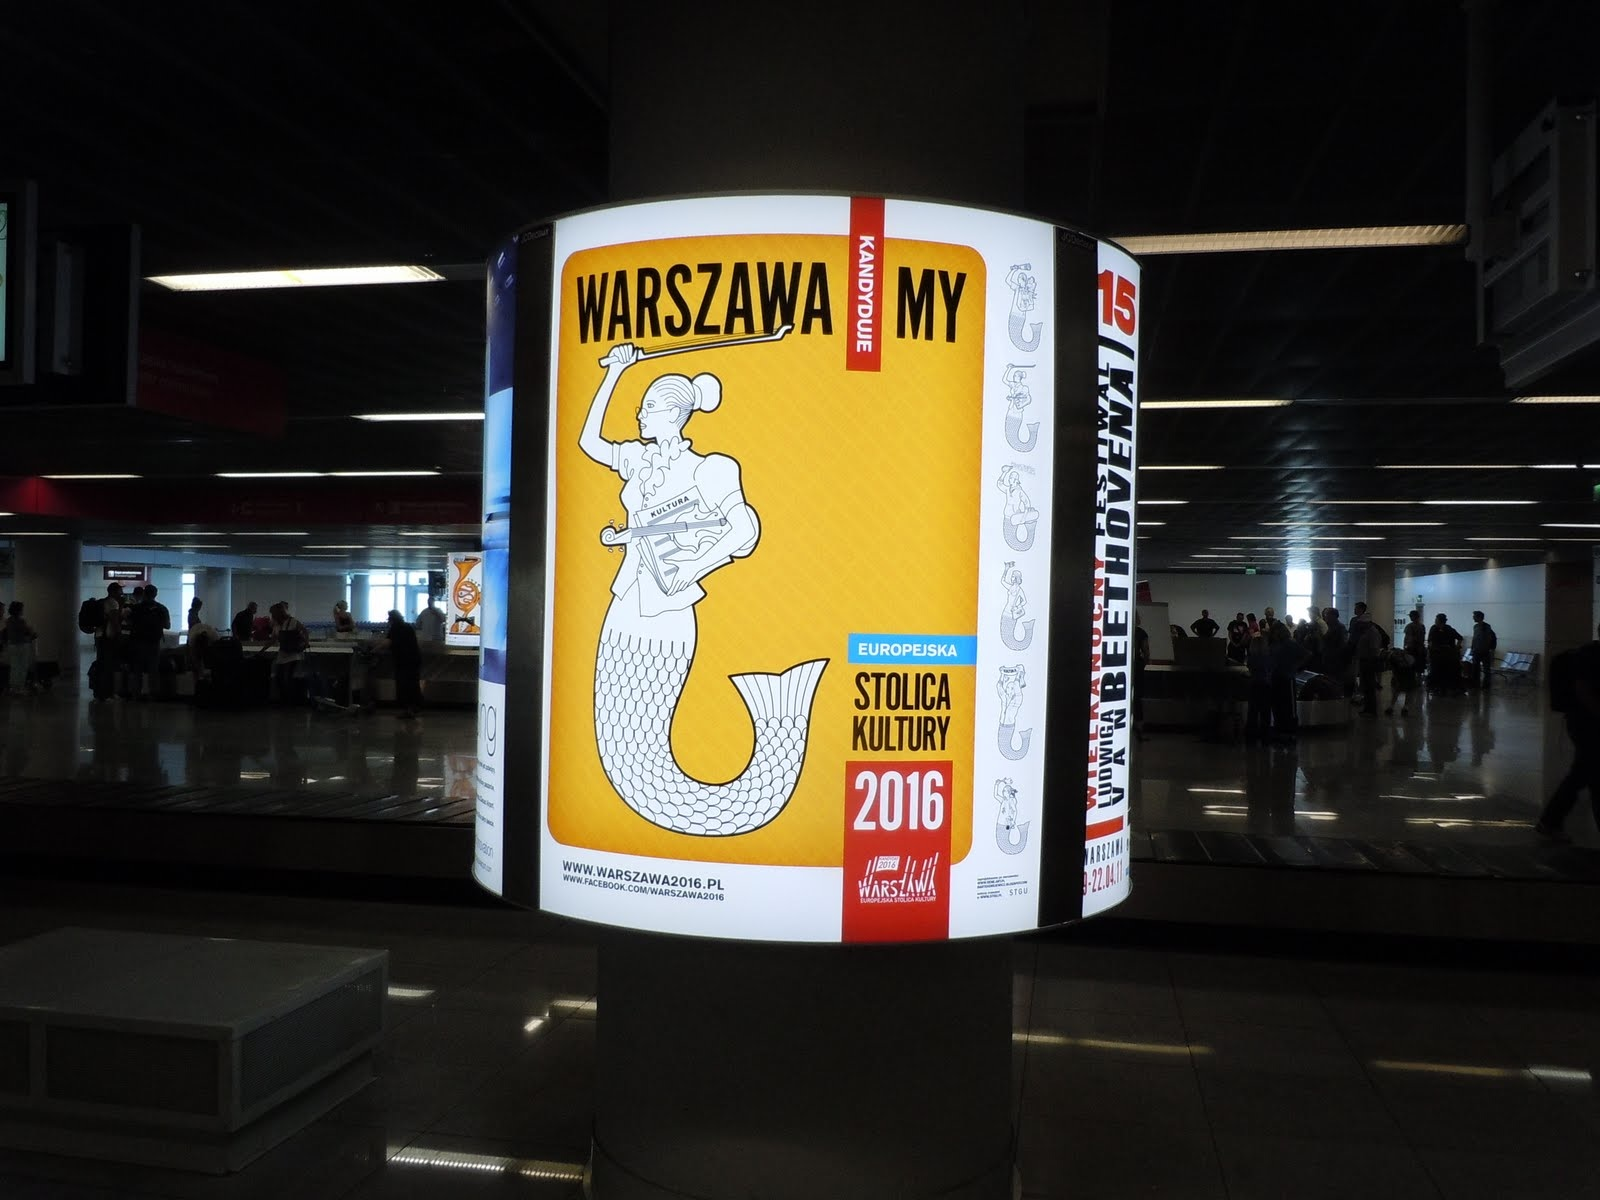 First Mermaid Sighting...at the Warsaw Airport